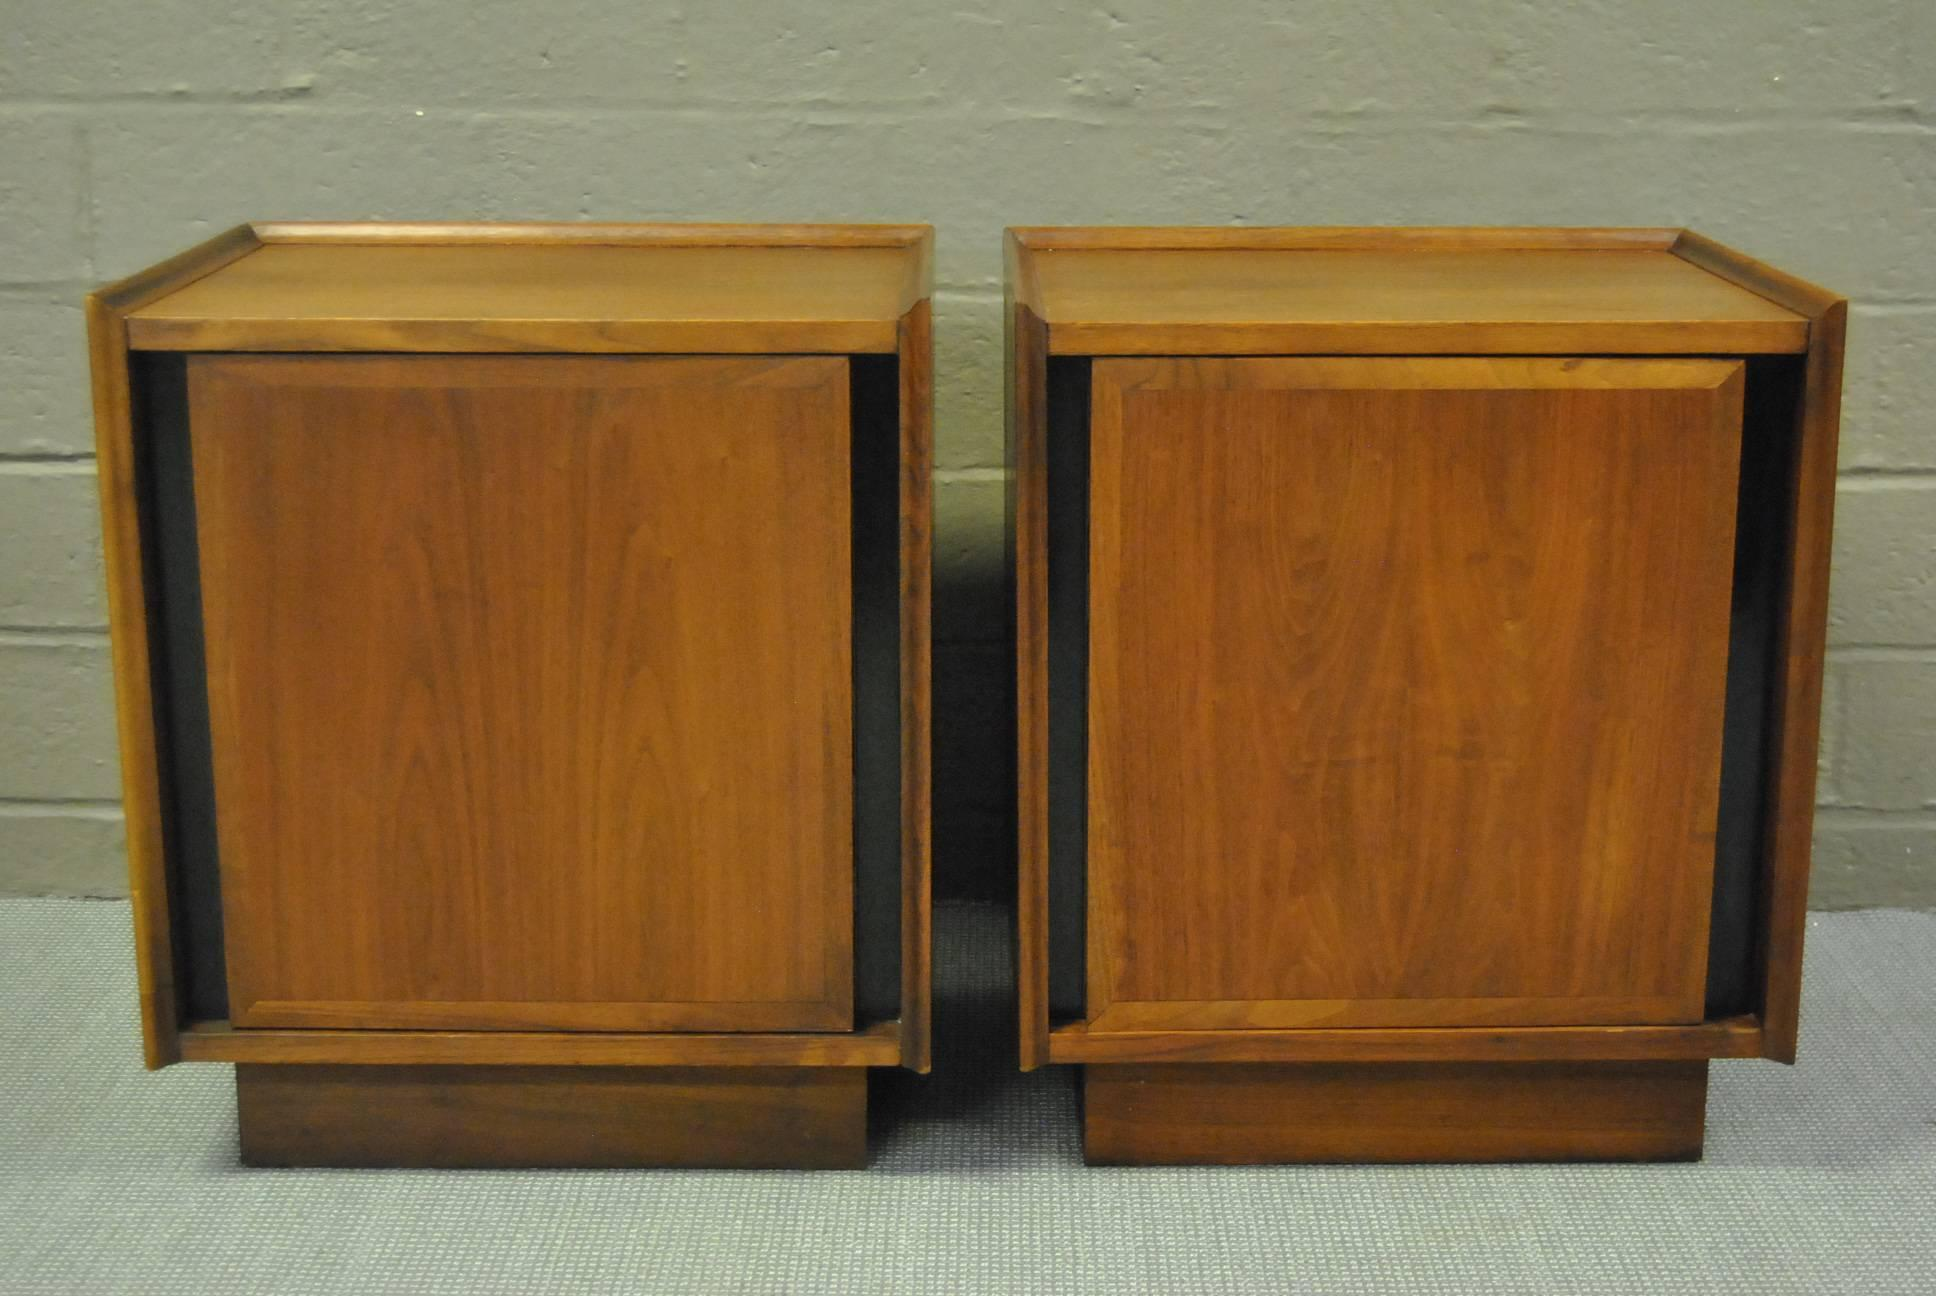 A Great Pair Of Walnut Nightstands Designed By Merton L. Gershun For  Dillingham As Part